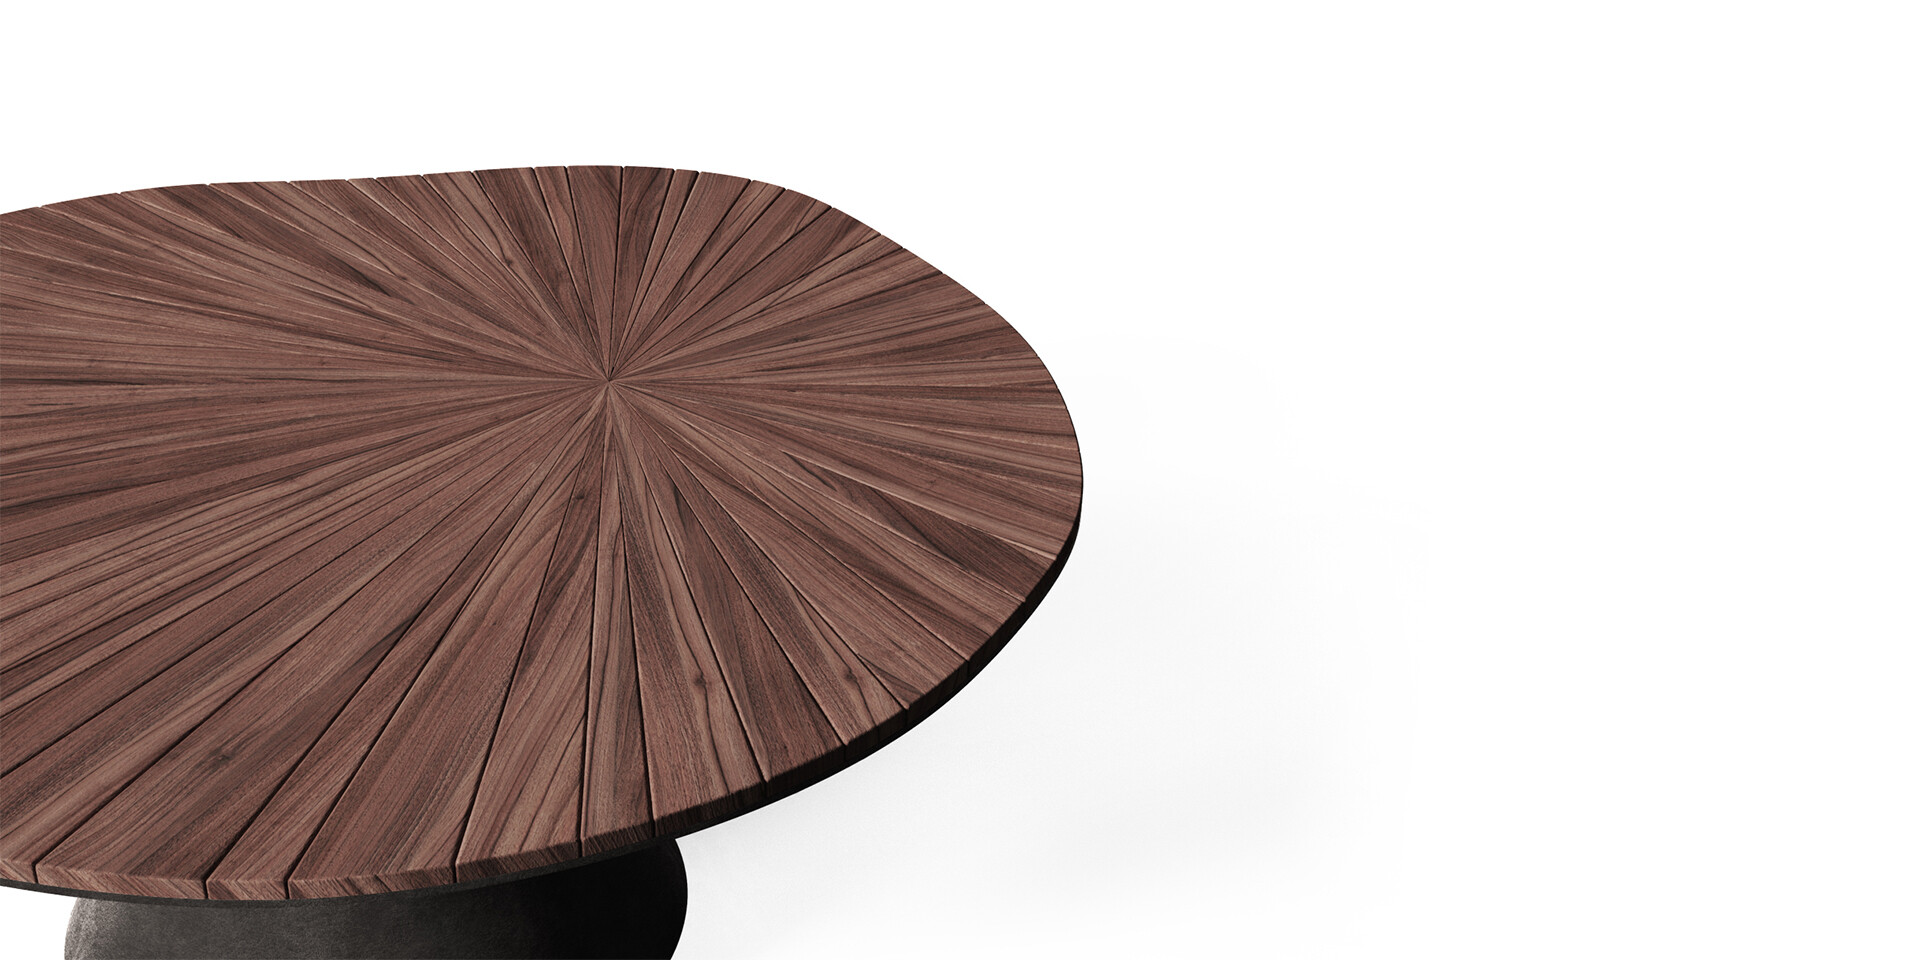 DARVAZA DINING TABLE detail top side view ALMA de LUCE